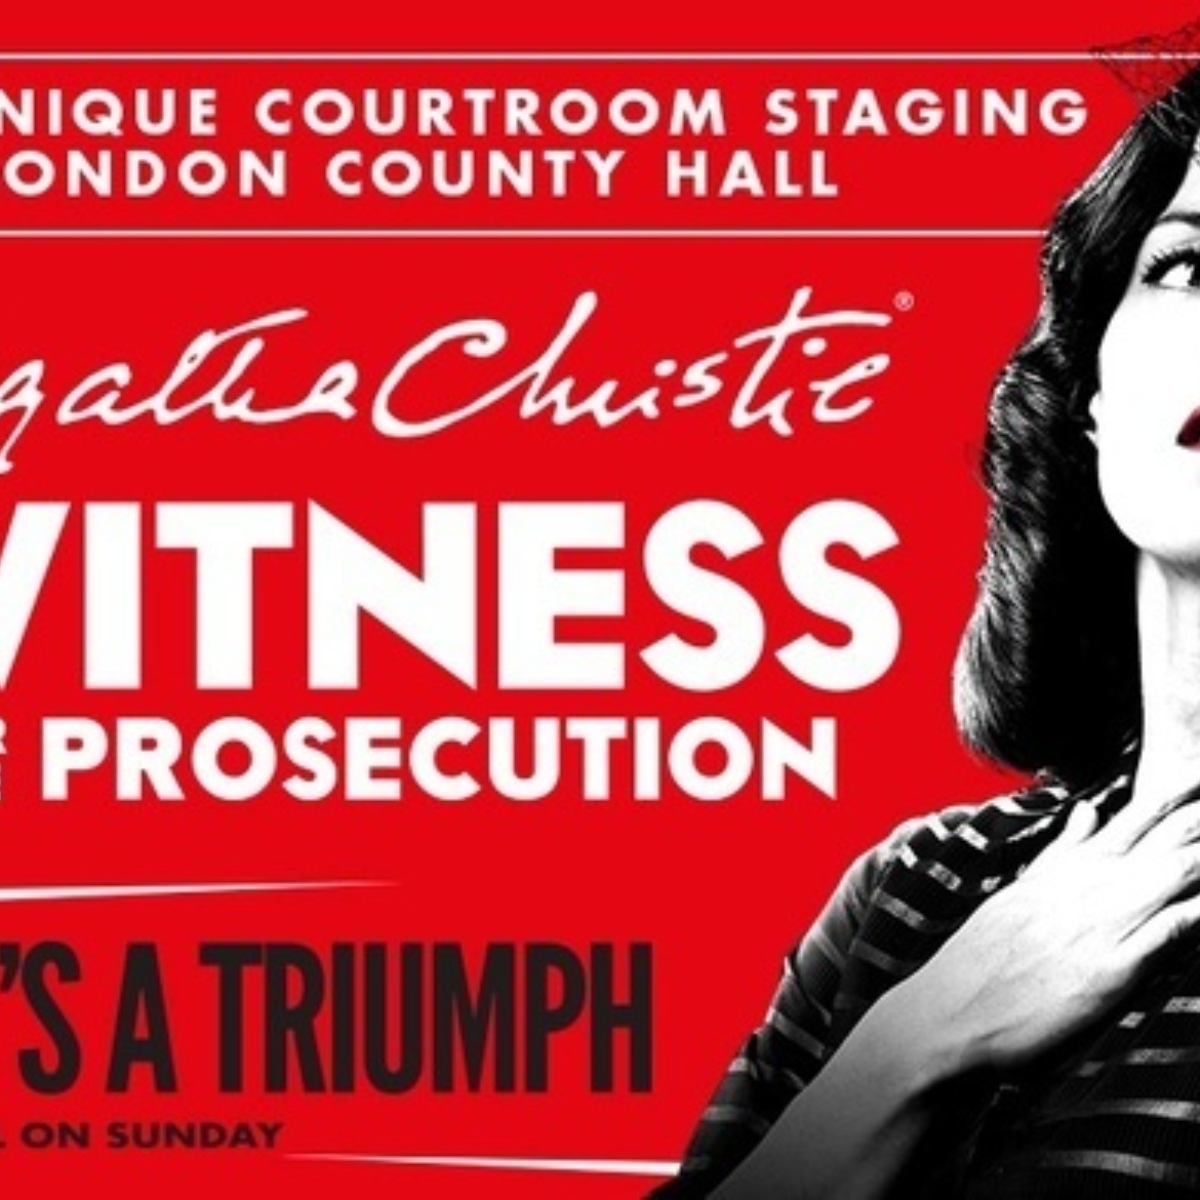 Witness for the Prosecution Images